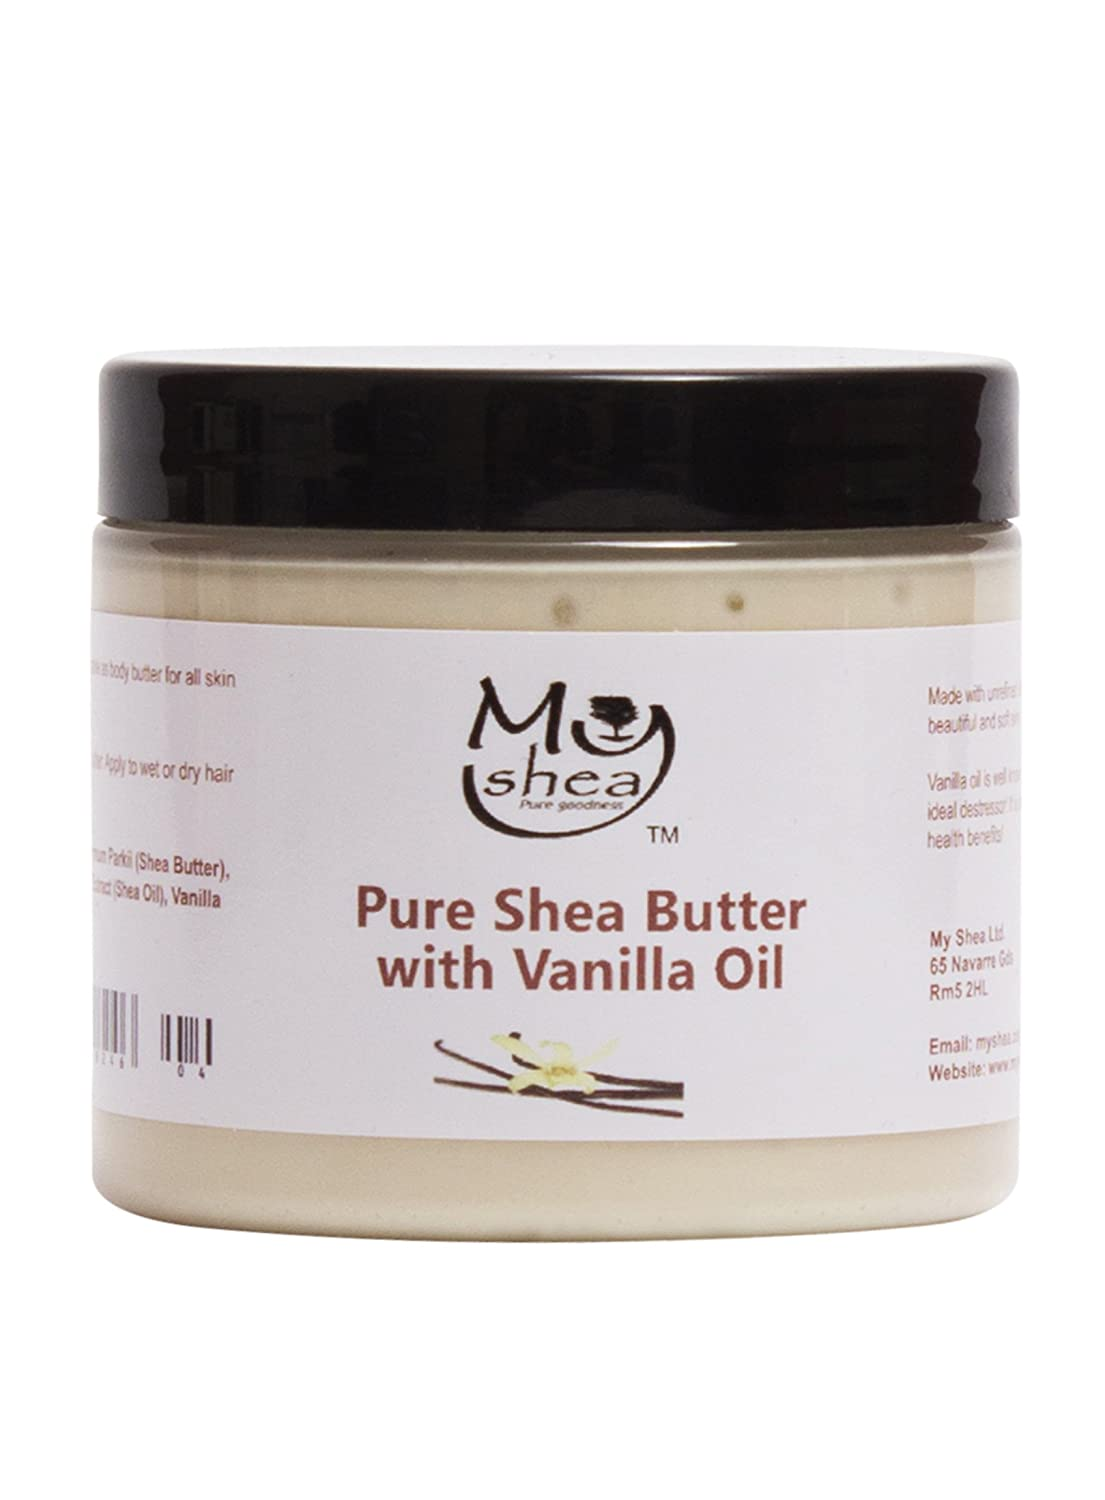 Whipped Organic Unrefined Shea Butter with Vanilla Oil My Shea Limited